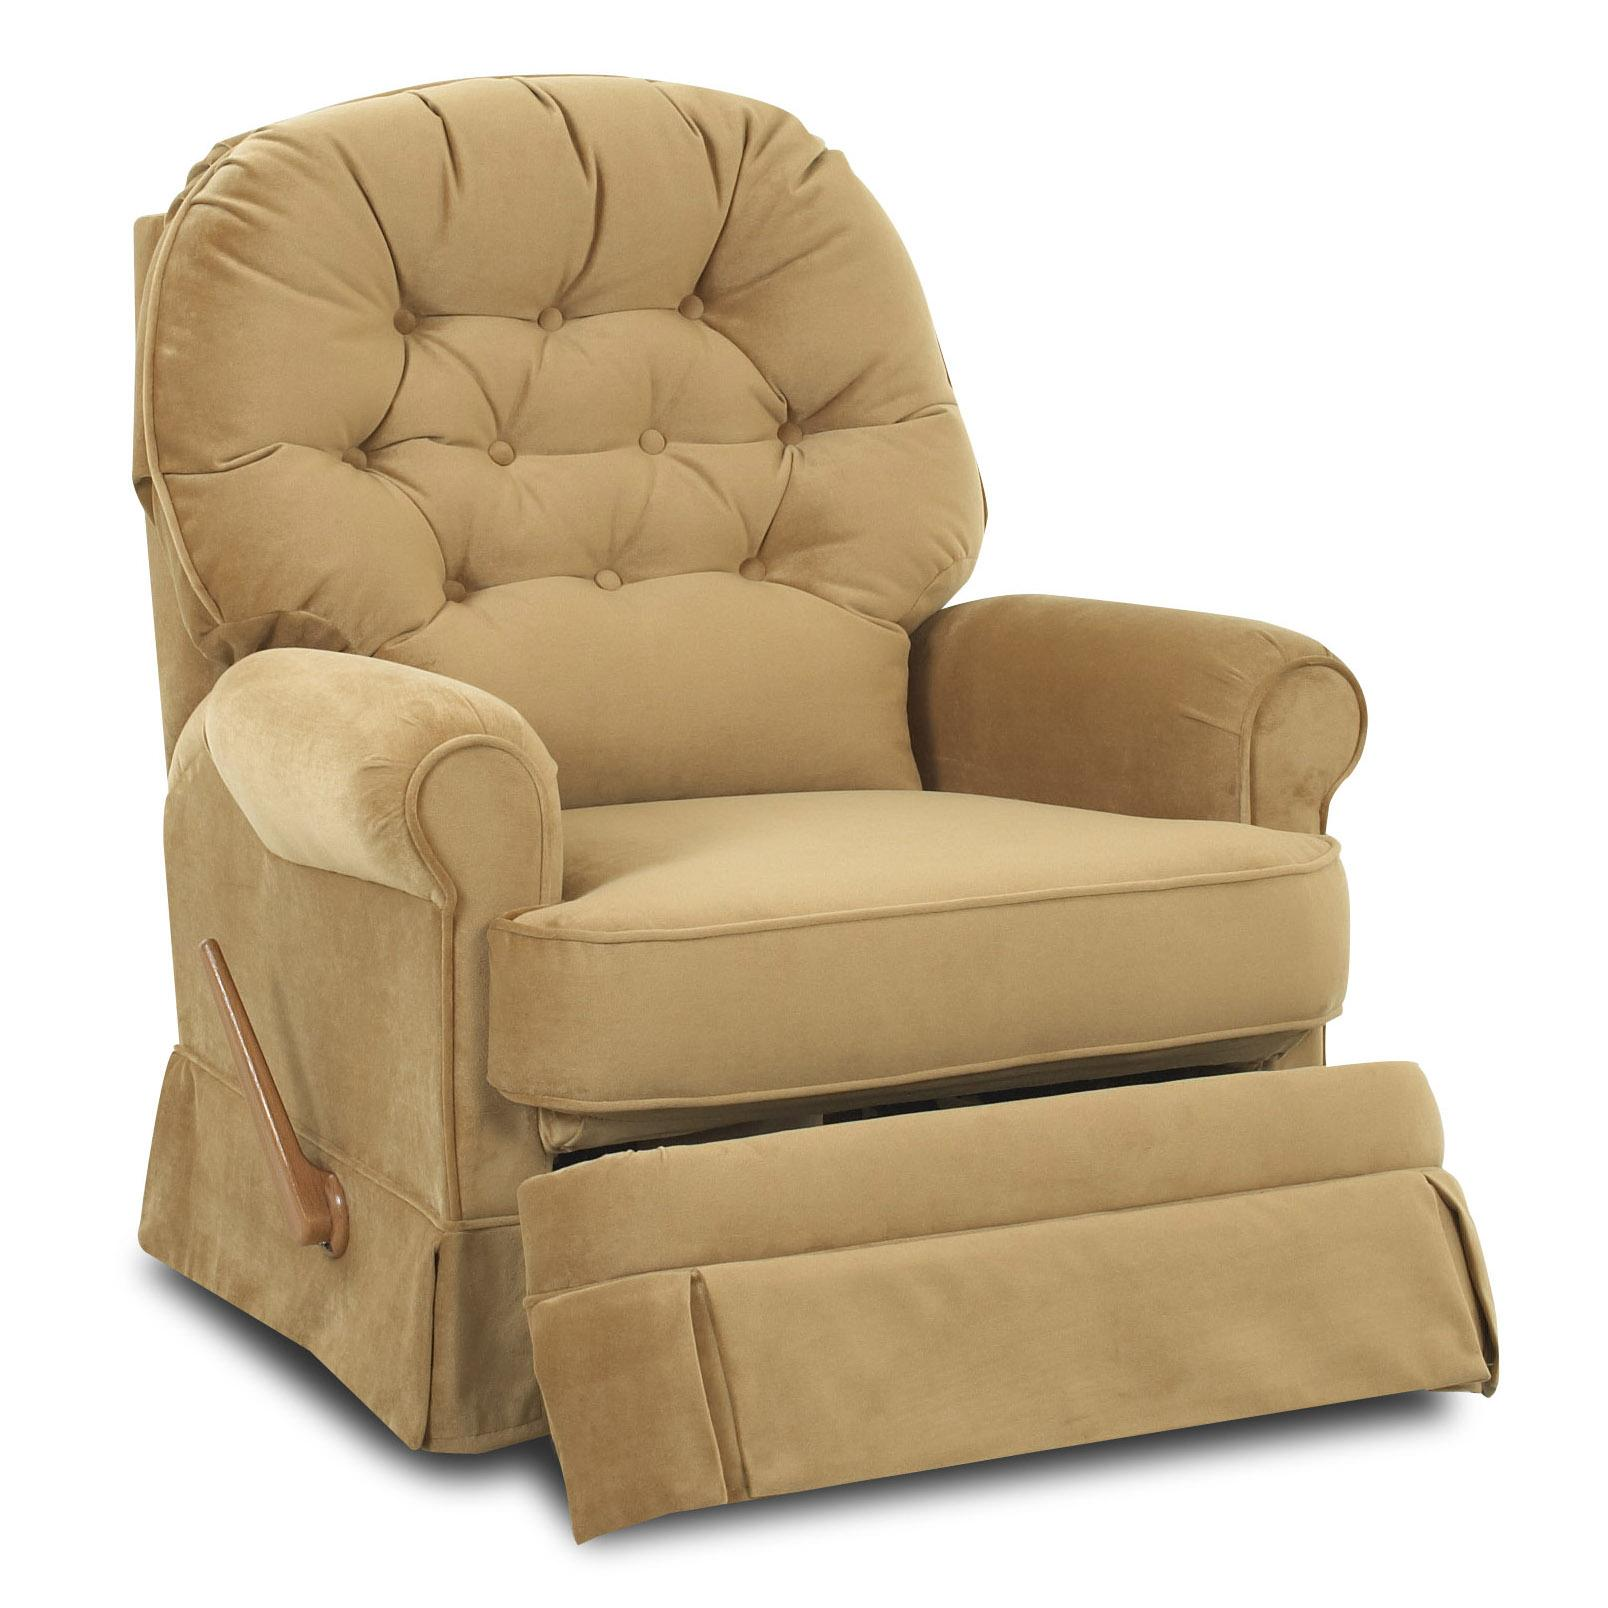 Ferdinand 3 Way Lift Chair